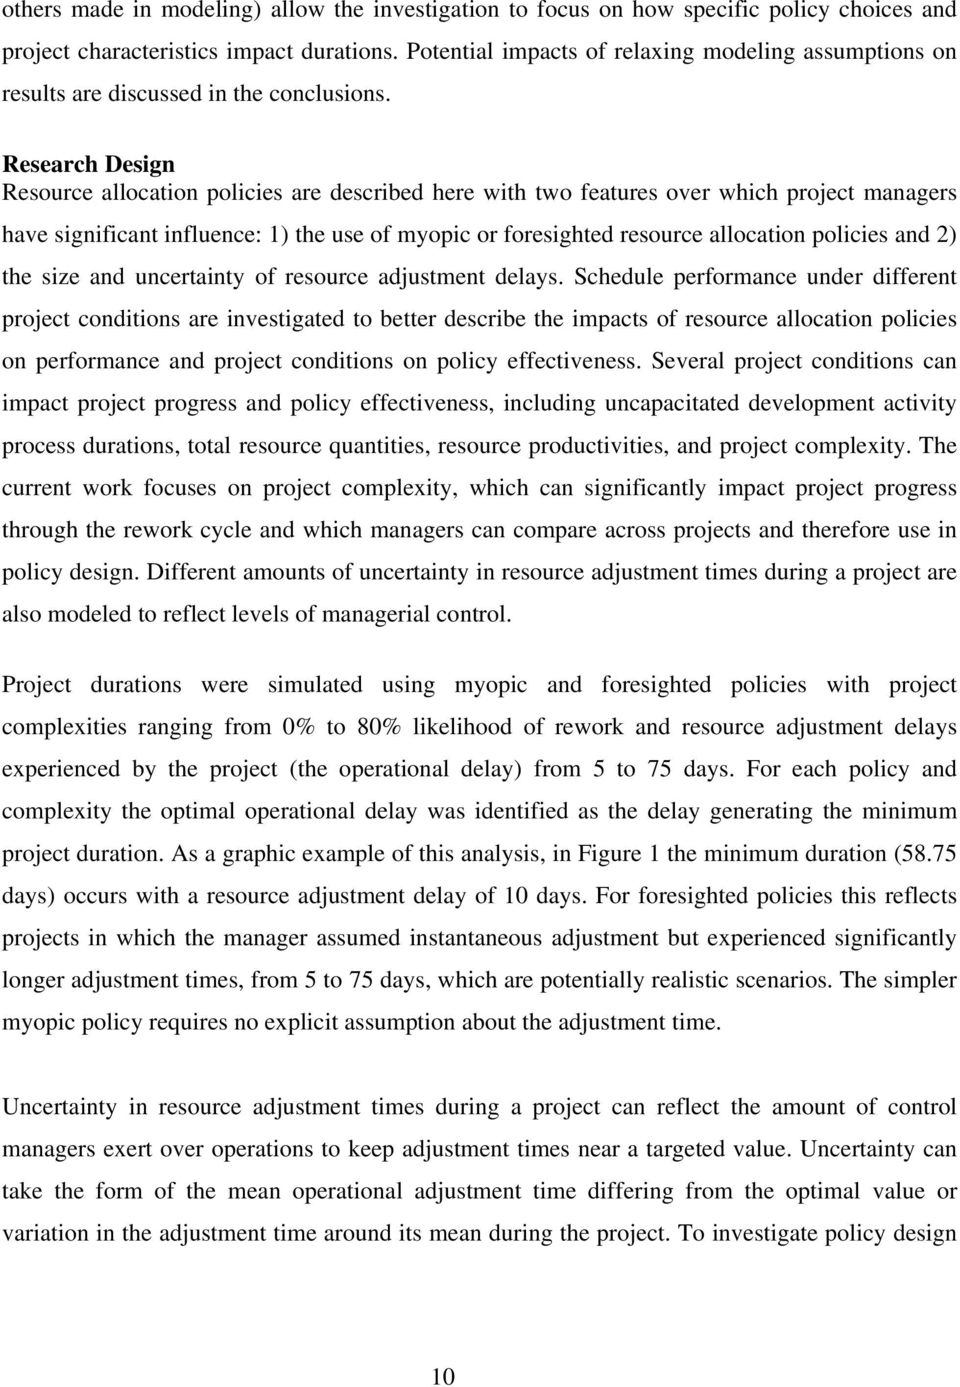 Research Design Resource allocation policies are described here with two features over which project managers have significant influence: 1) the use of myopic or foresighted resource allocation